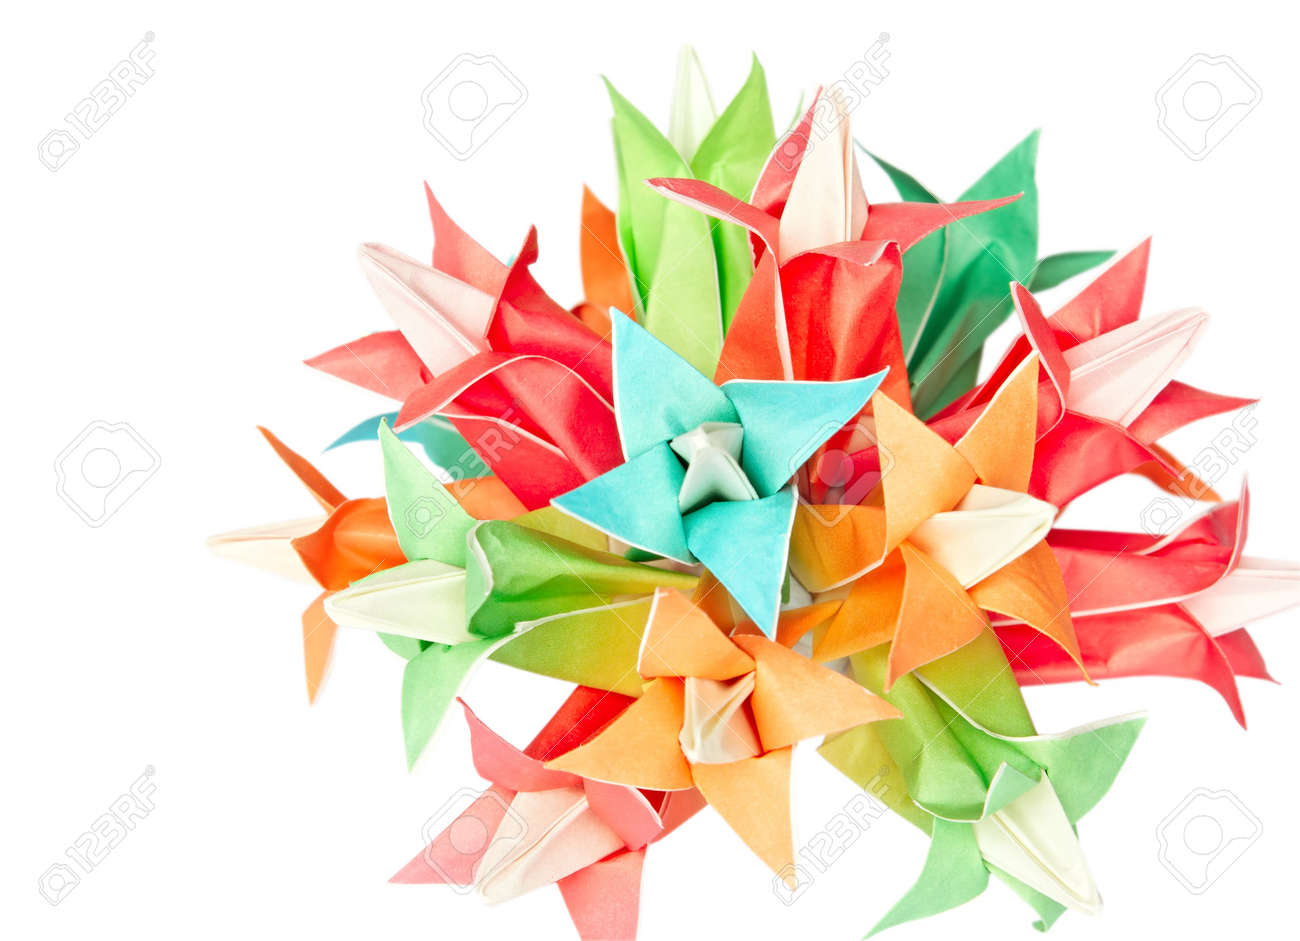 Colourful Origami Flower Ball Isolated On A White Background Stock